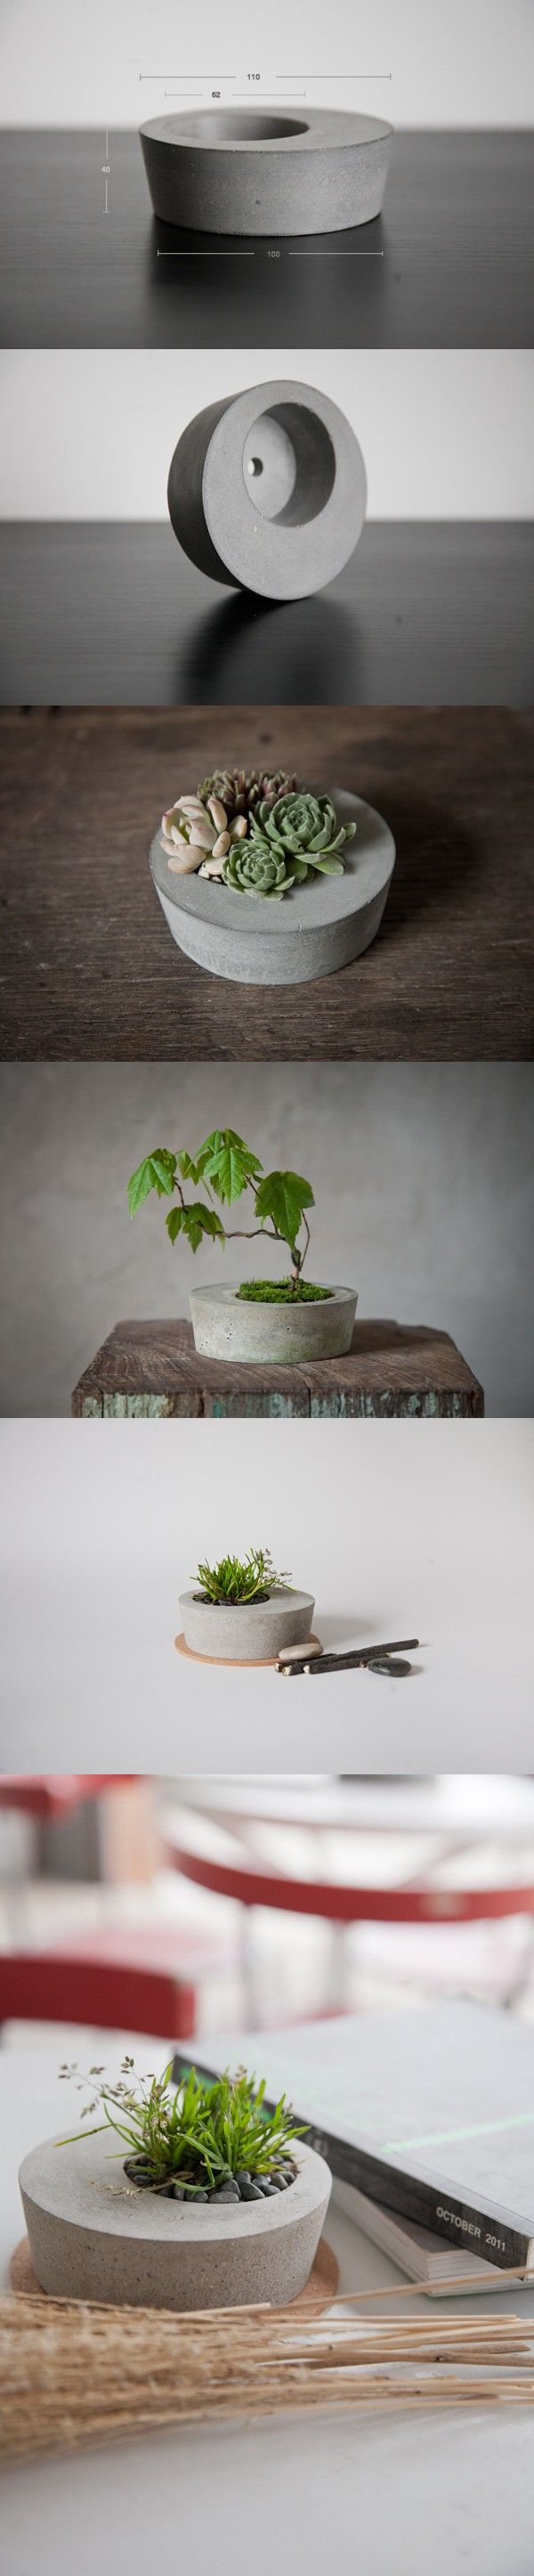 DIY: Concrete planter - a really great hostess gift idea